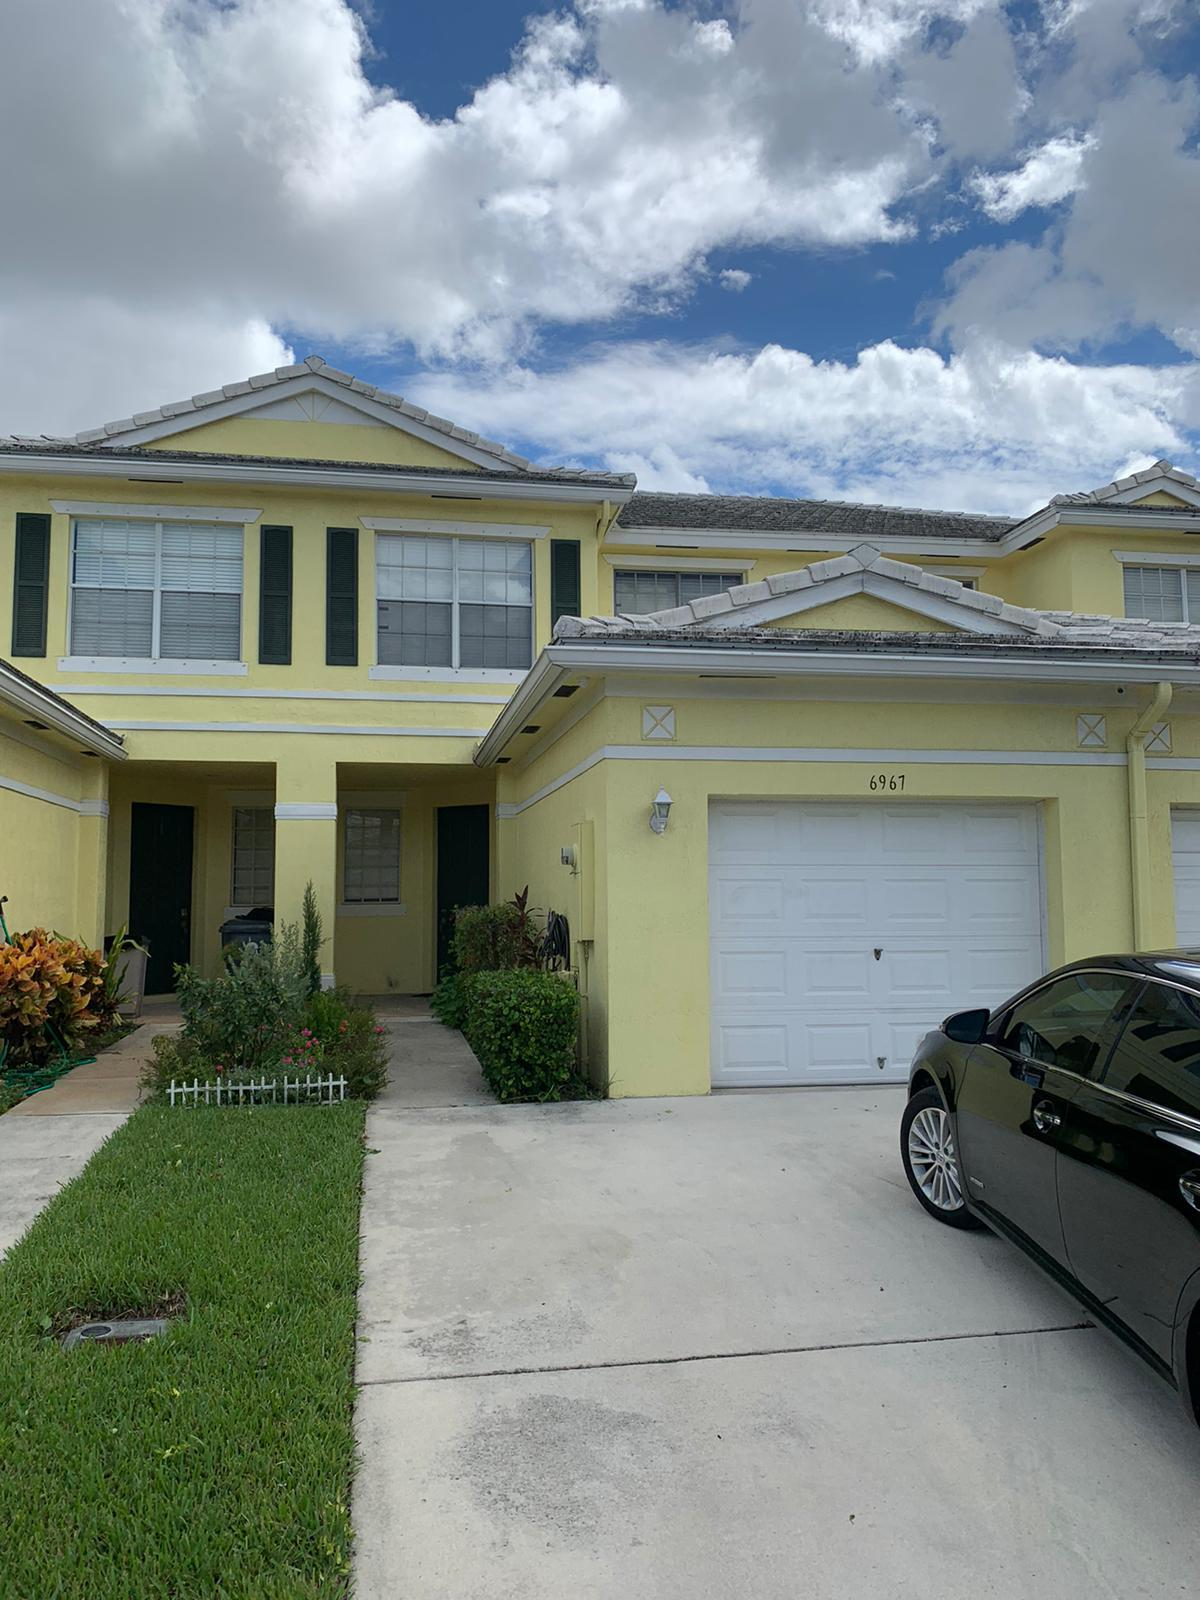 6967 Blue Skies Drive, Lake Worth, Florida 33463, 3 Bedrooms Bedrooms, ,2.1 BathroomsBathrooms,Townhouse,For Rent,Blue Skies,RX-10653414